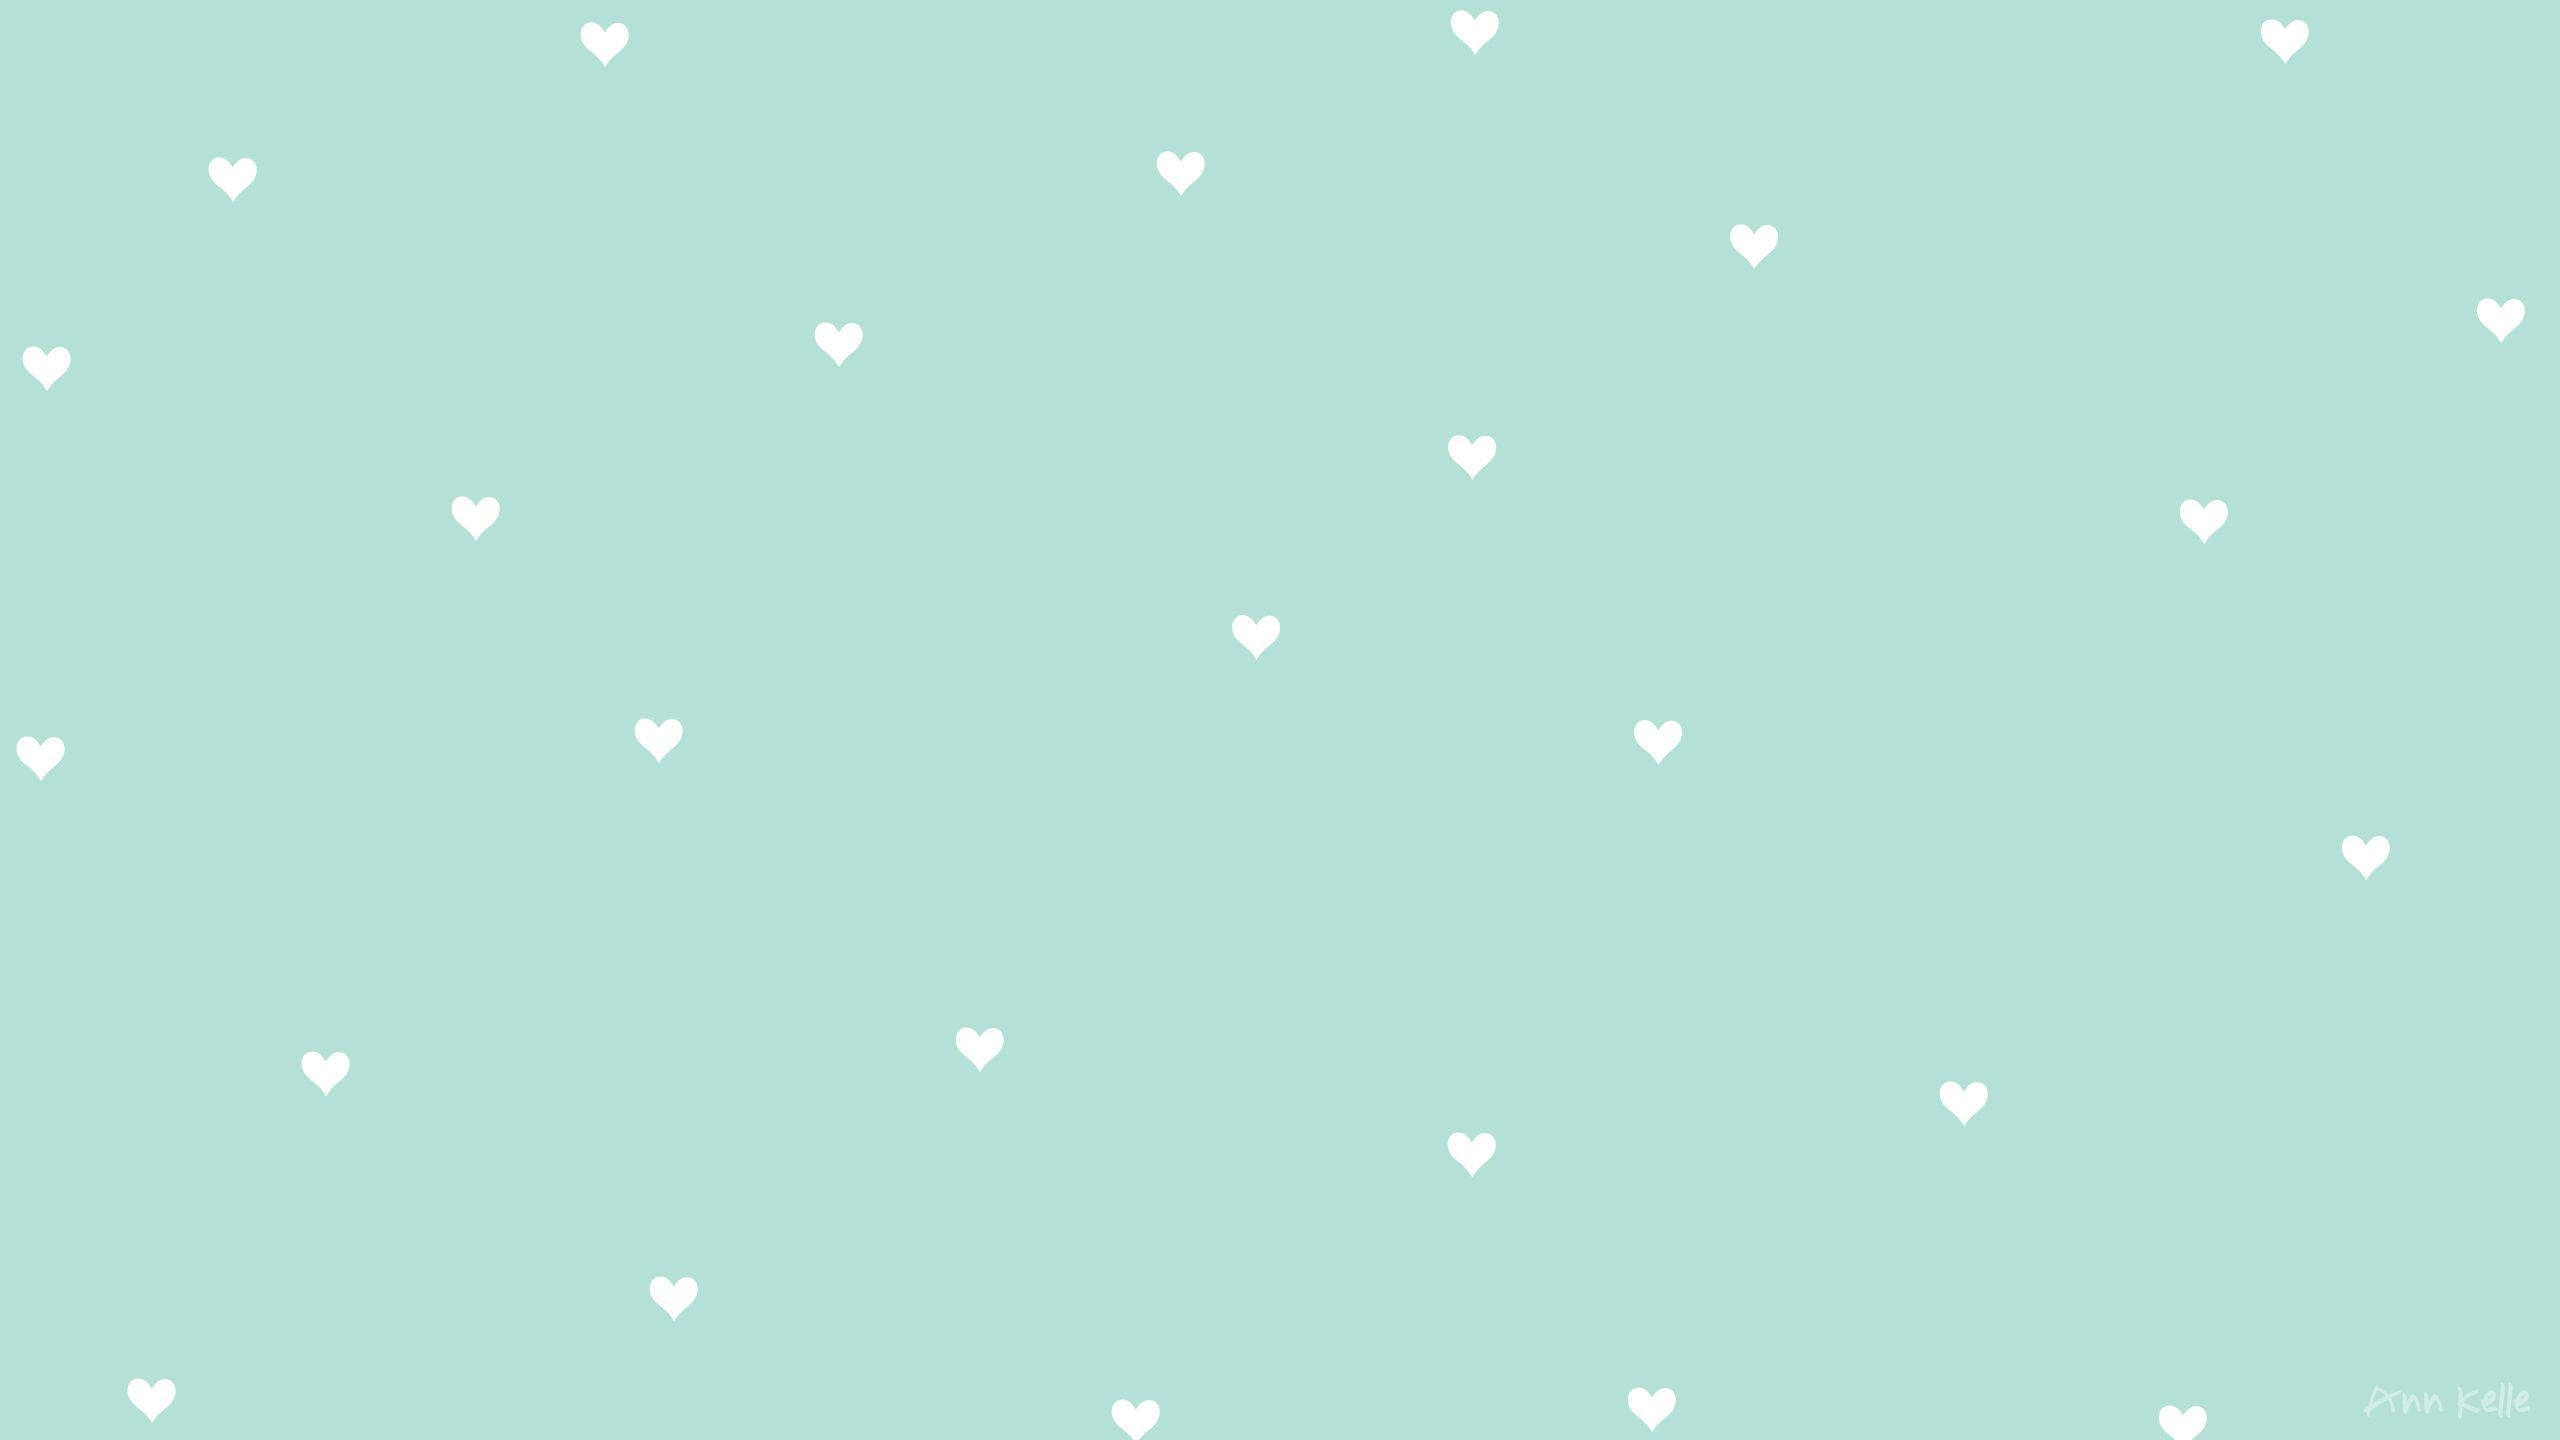 Mint Green Aesthetic Wallpapers   Top Mint Green Aesthetic 2560x1440